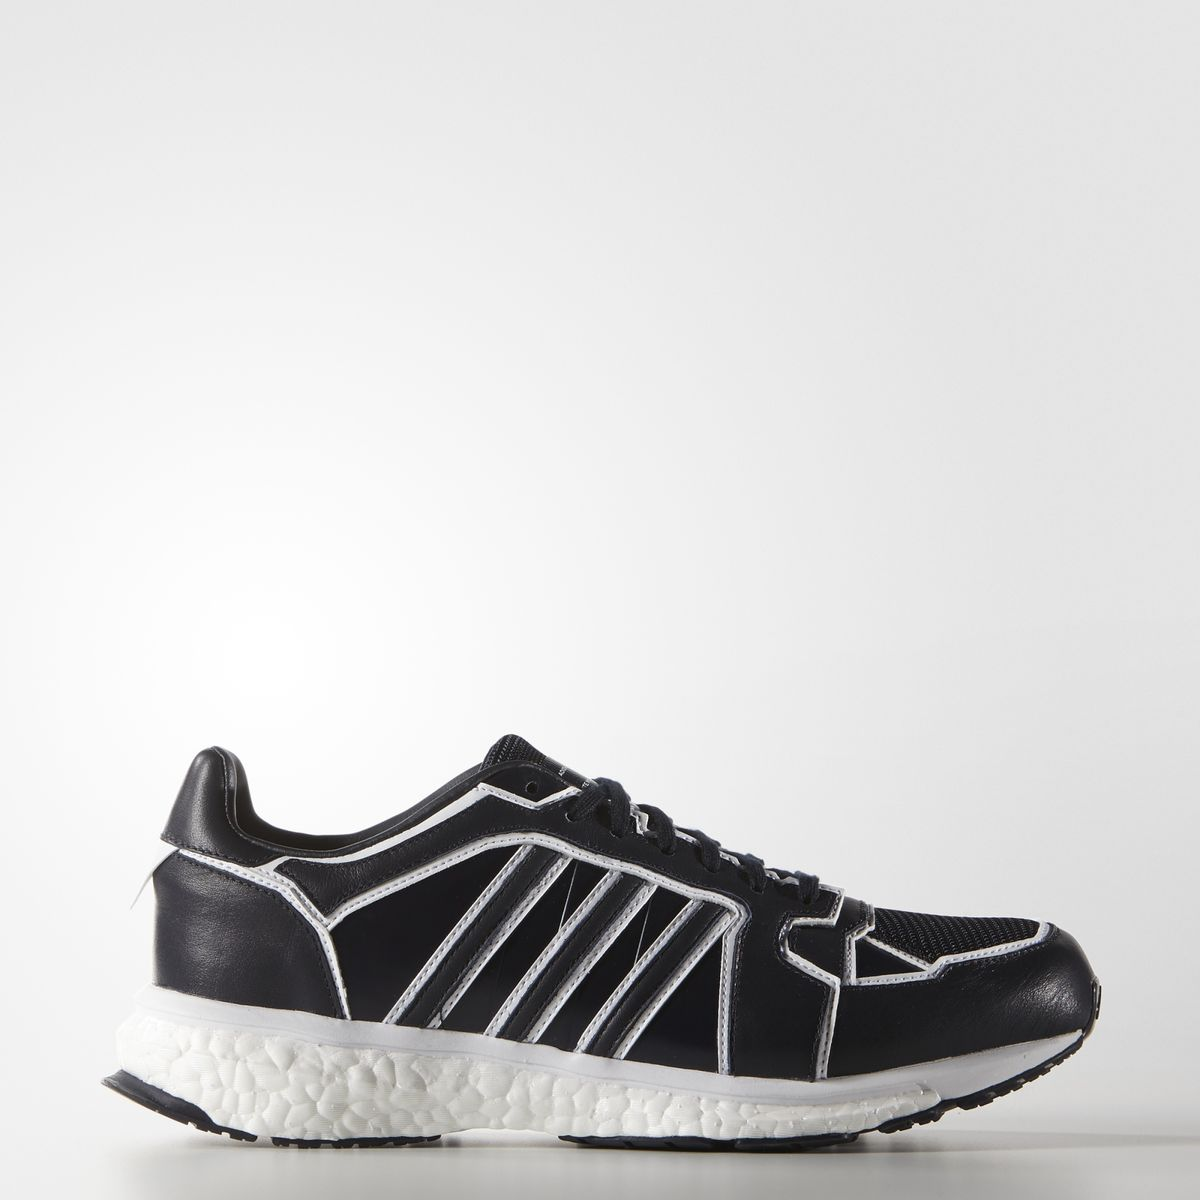 White Mountaineering Energy Boost Shoes - Men Originals